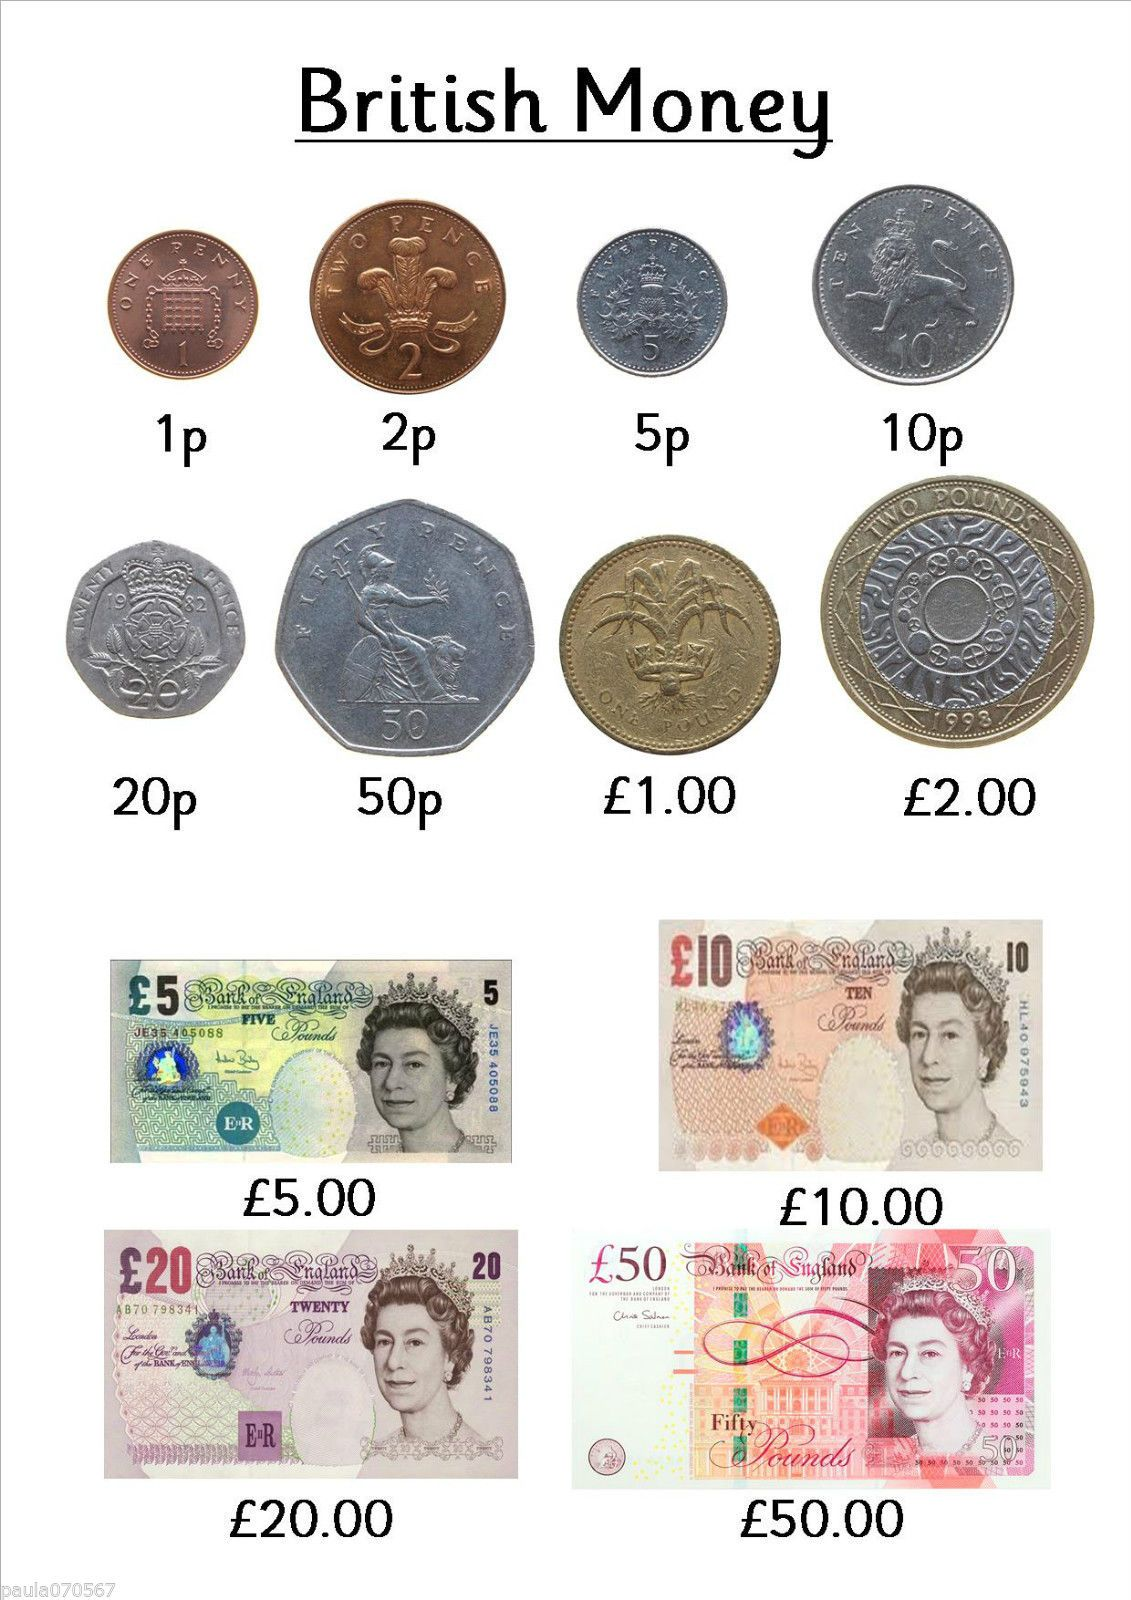 Details About British Money Quick View A4 Poster Full